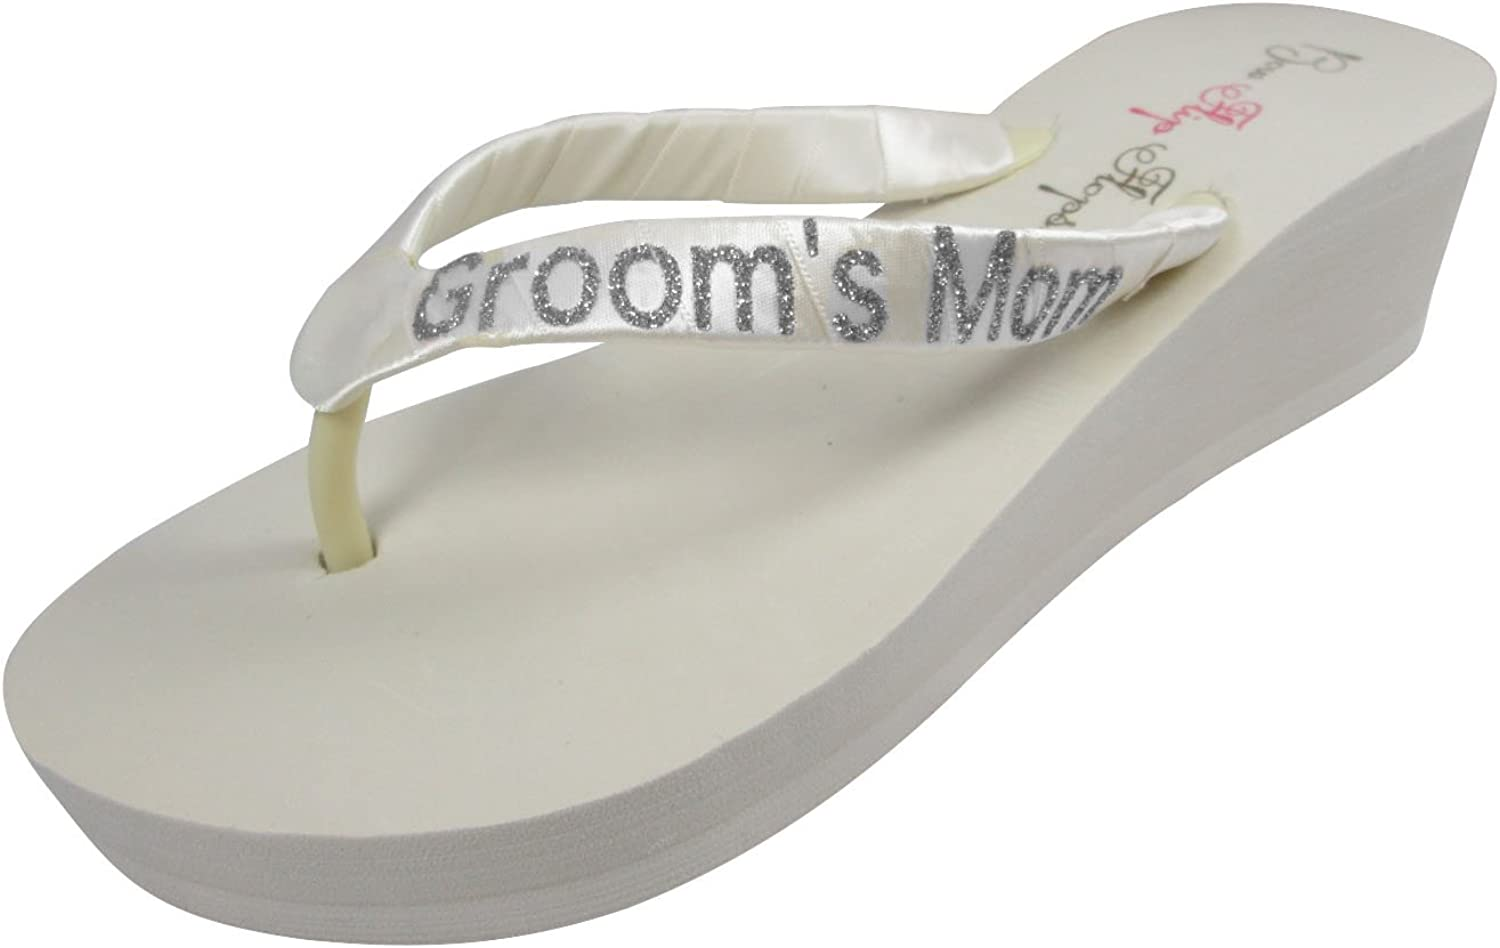 Grooms Mom Ivory Flip Flops with Silver gold Black Glitter Satin Straps